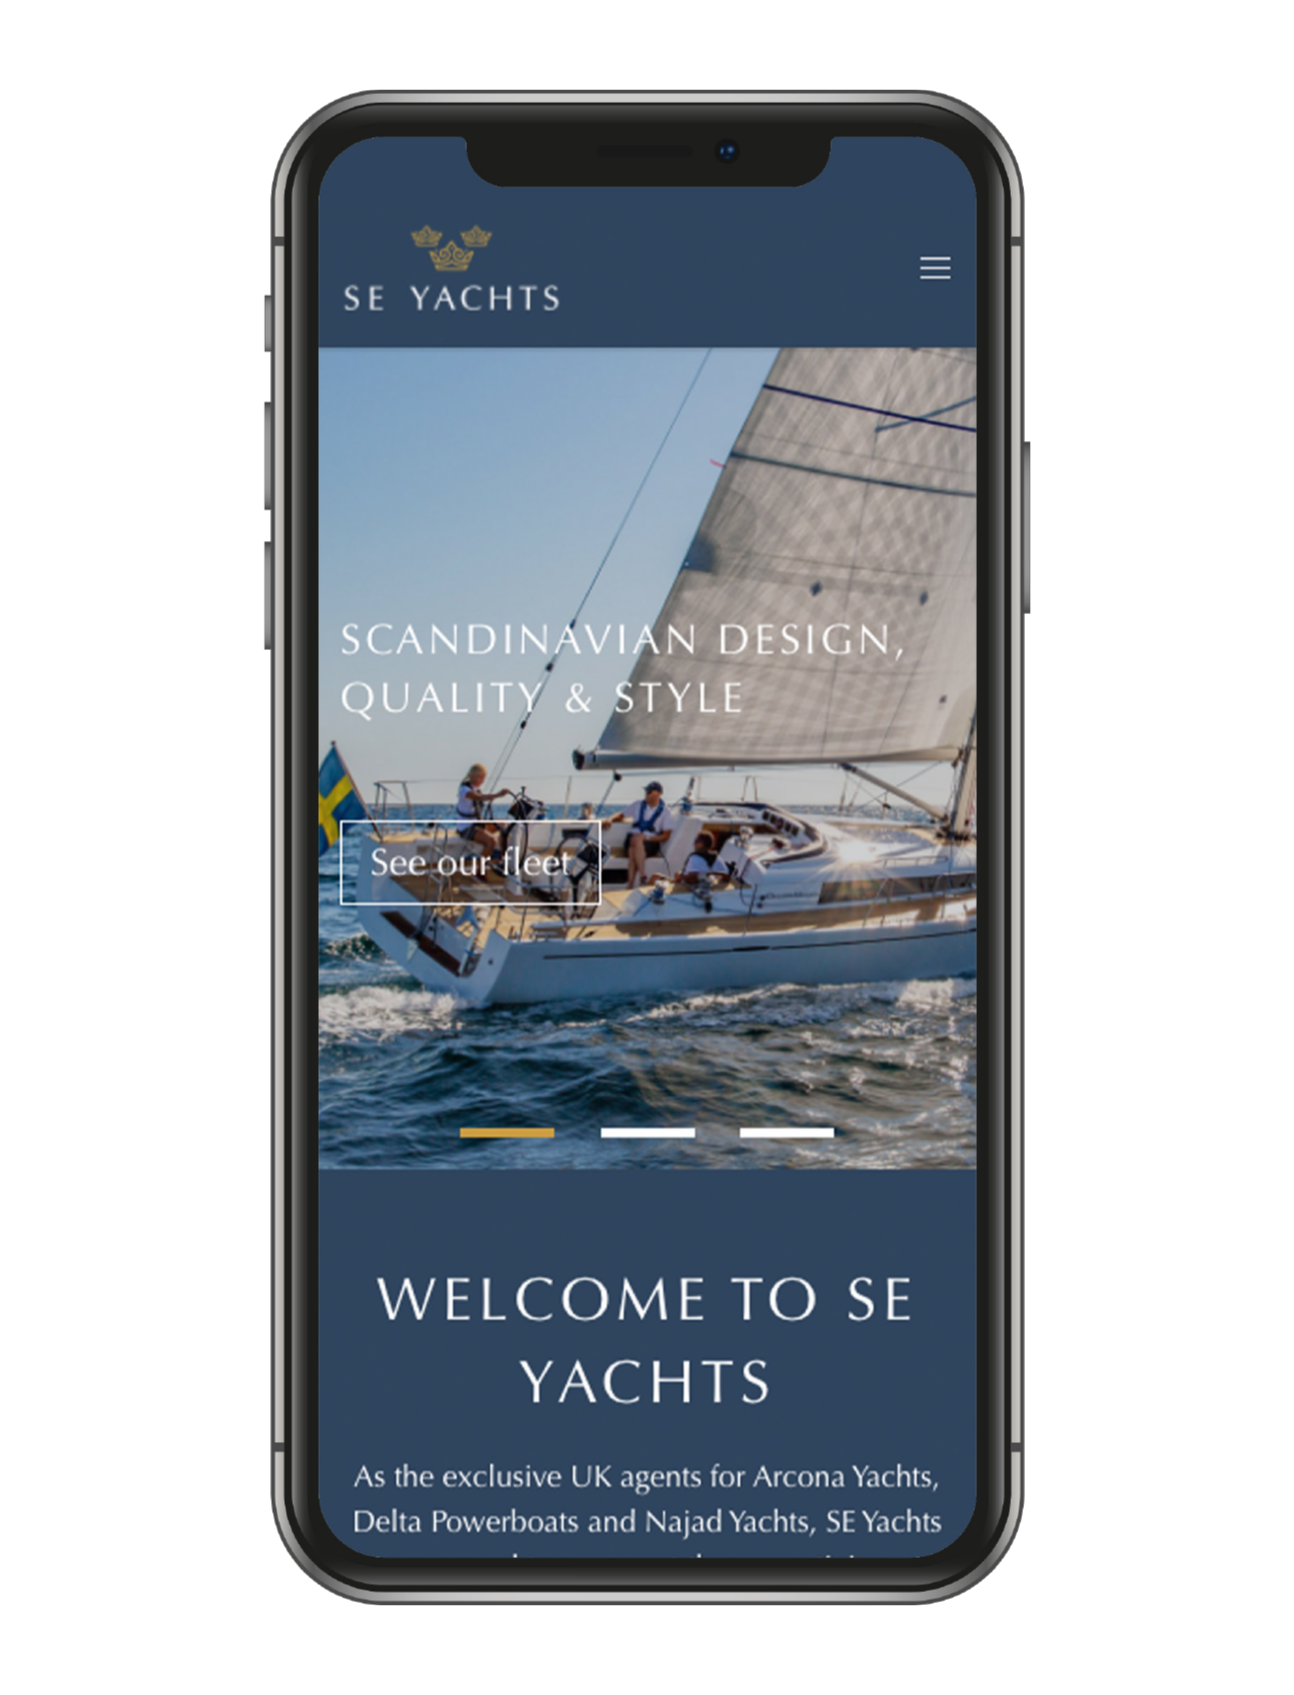 SE YACHTS homepage mobile view